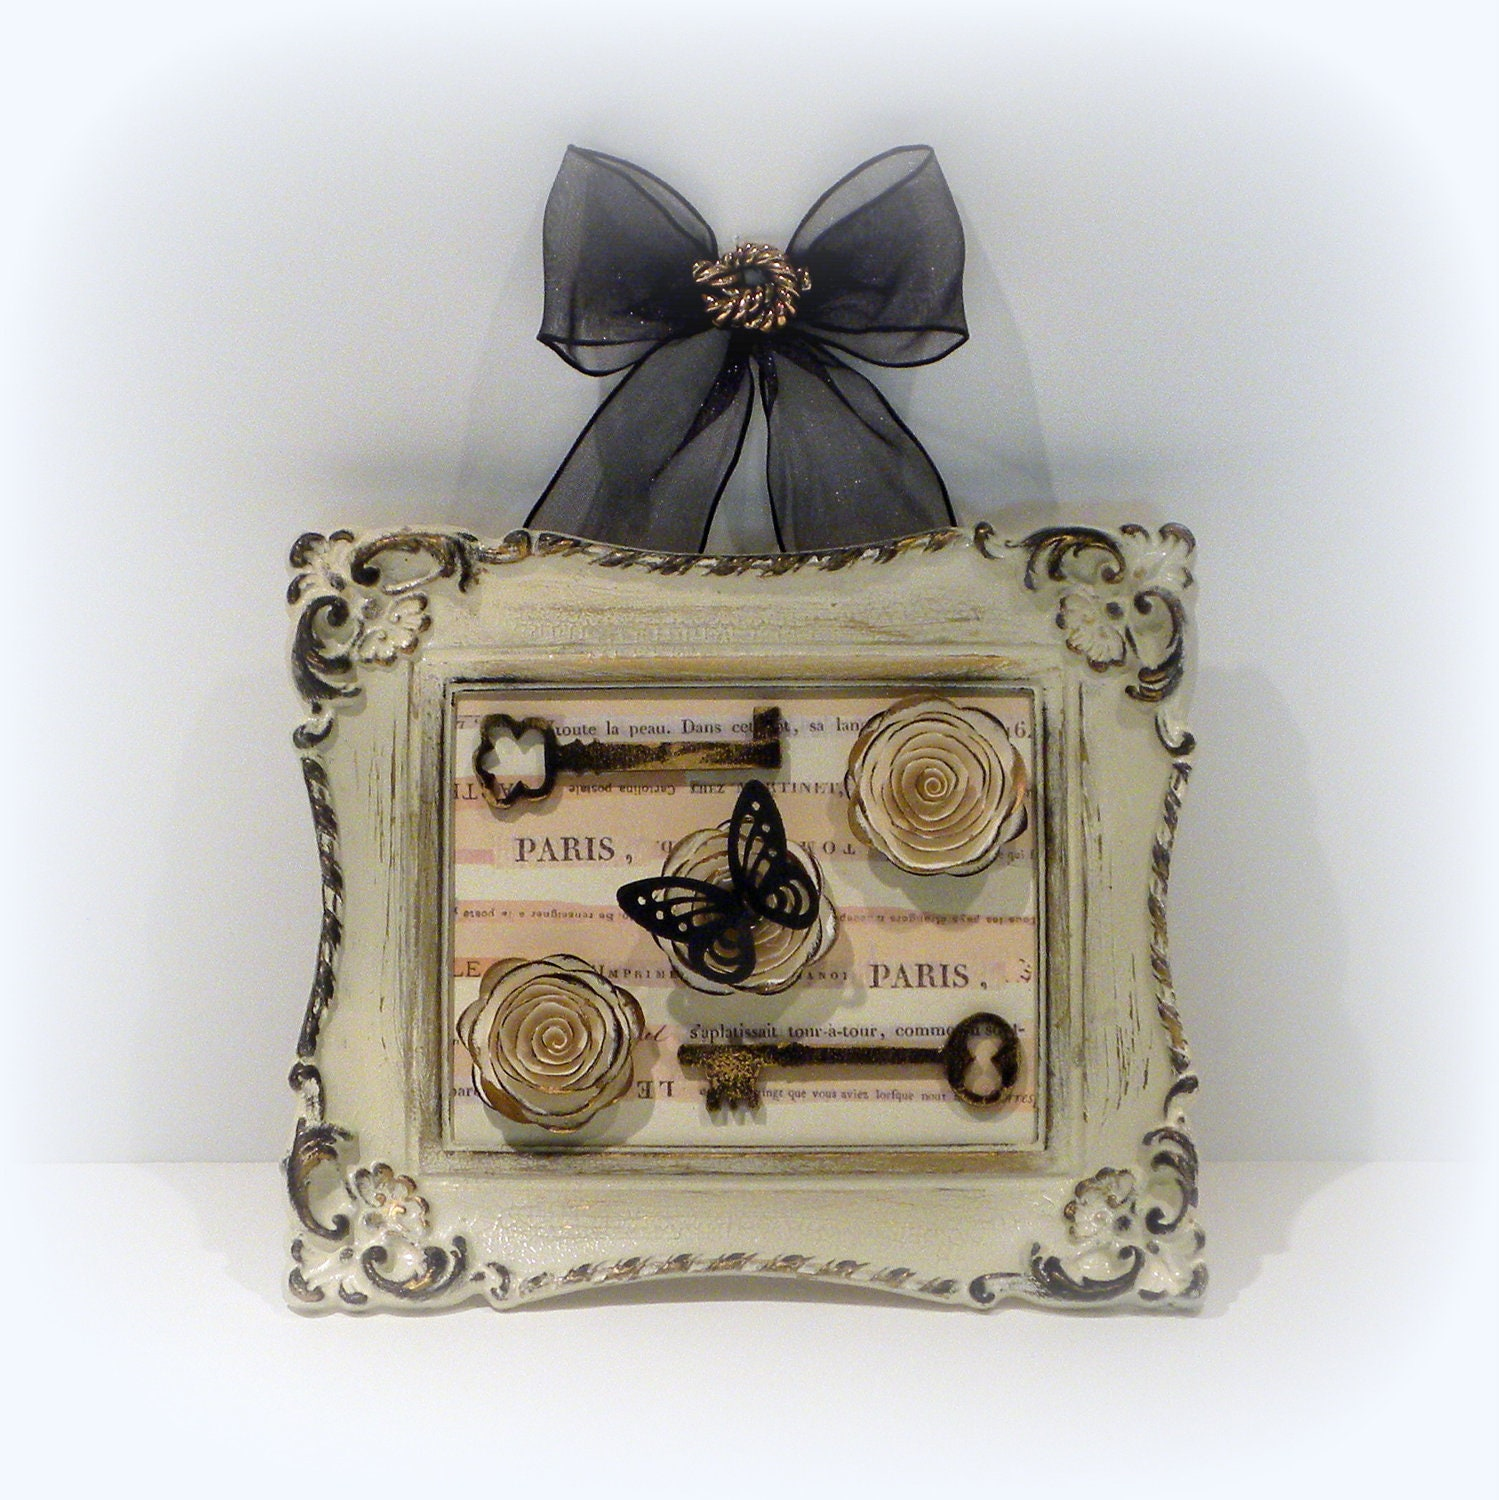 Paris Chic Wall Decor Country French Framed Rose Wall Decor. Grey Tv Stand. Movie Room. Package Drop Box. Capital Cooking. Lowes Loveland. Inexpensive Window Treatments. Painted Coffee Tables. Maccos Green Bay